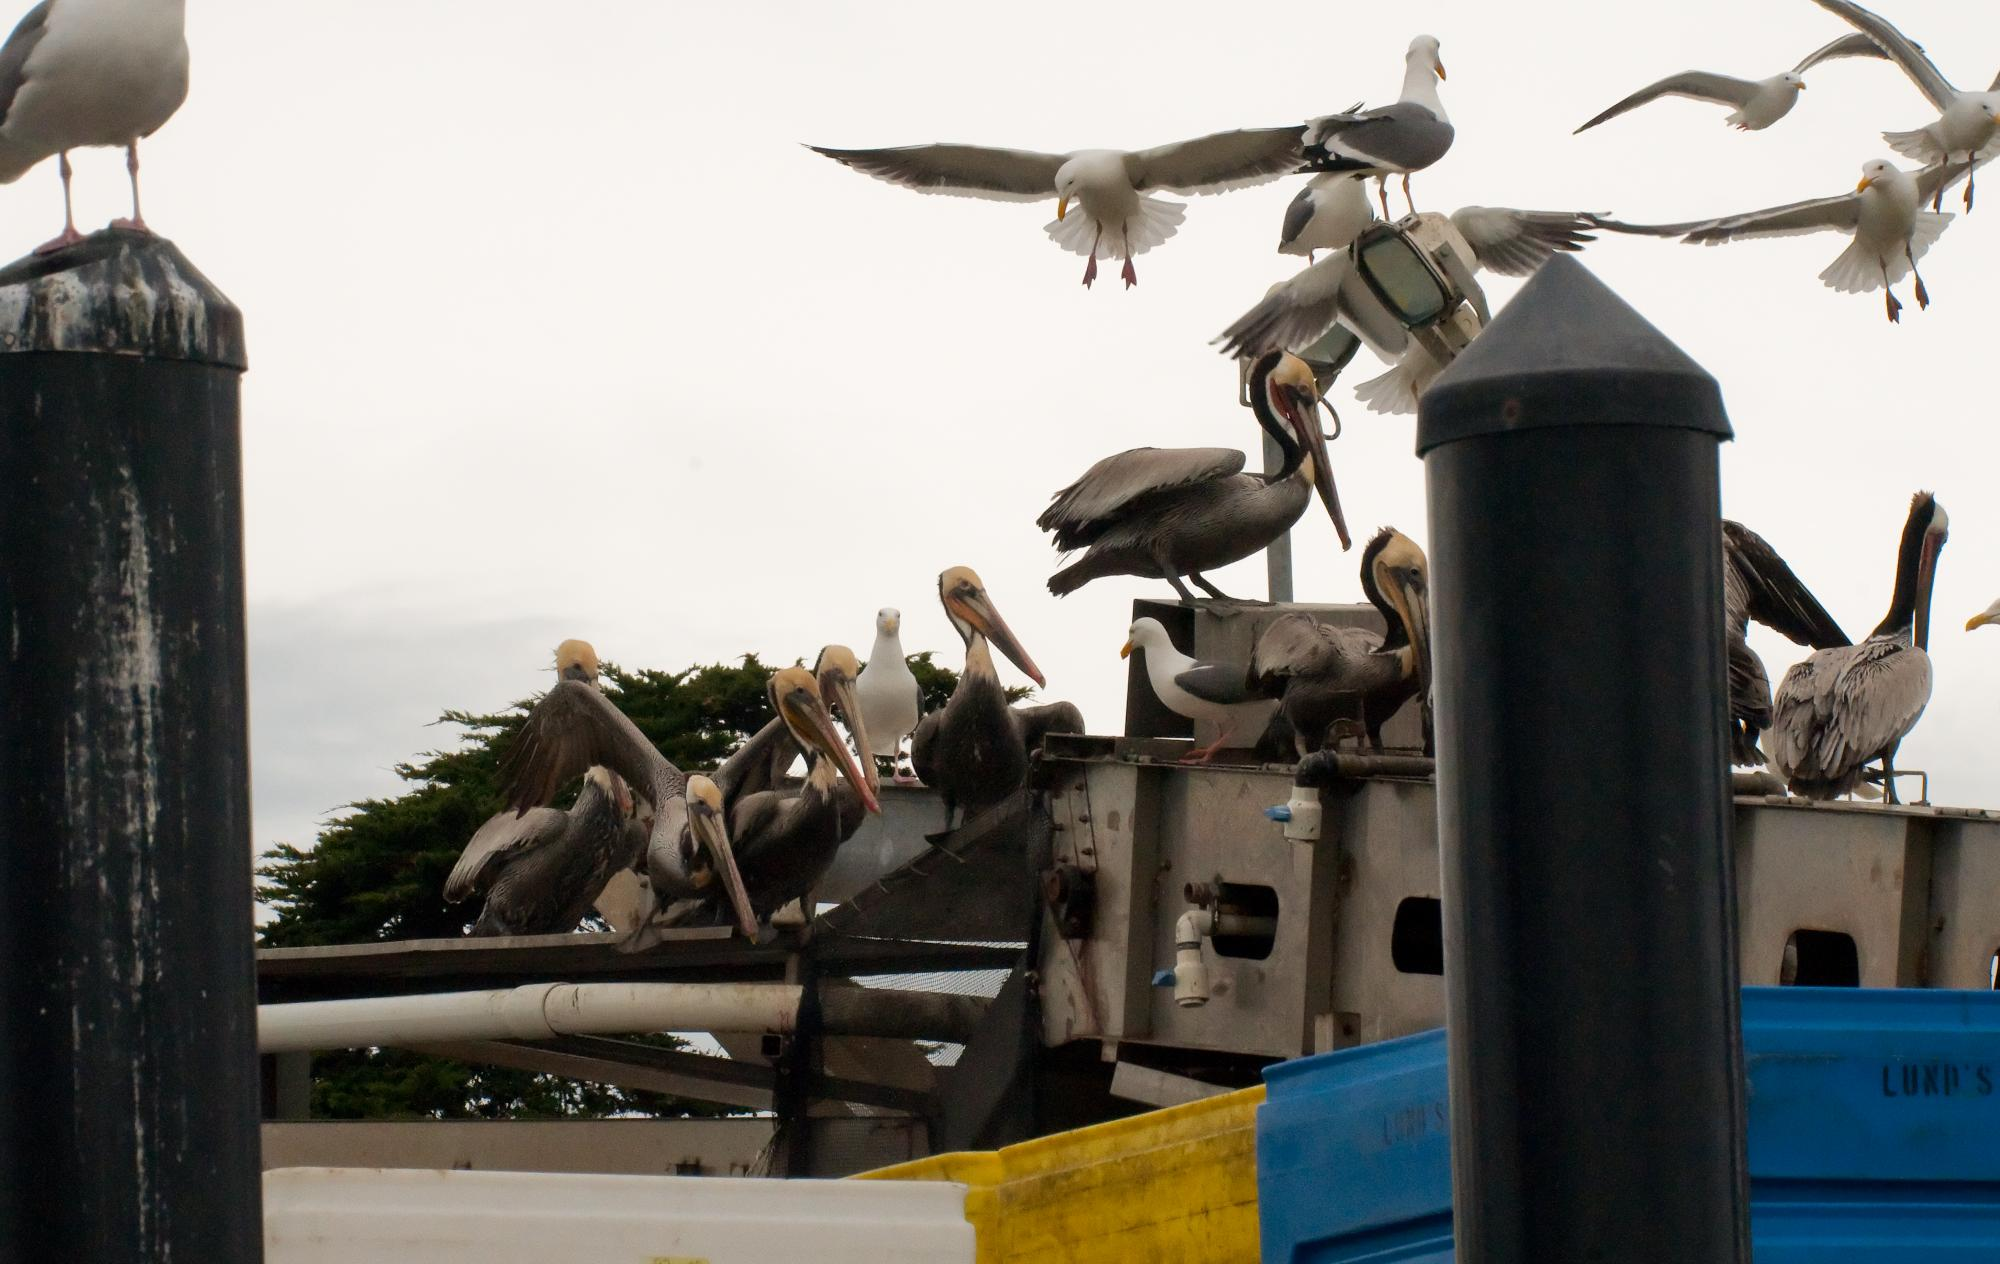 20100522_Brown_Pelicans_Perched_Fishing_Equipment.jpg